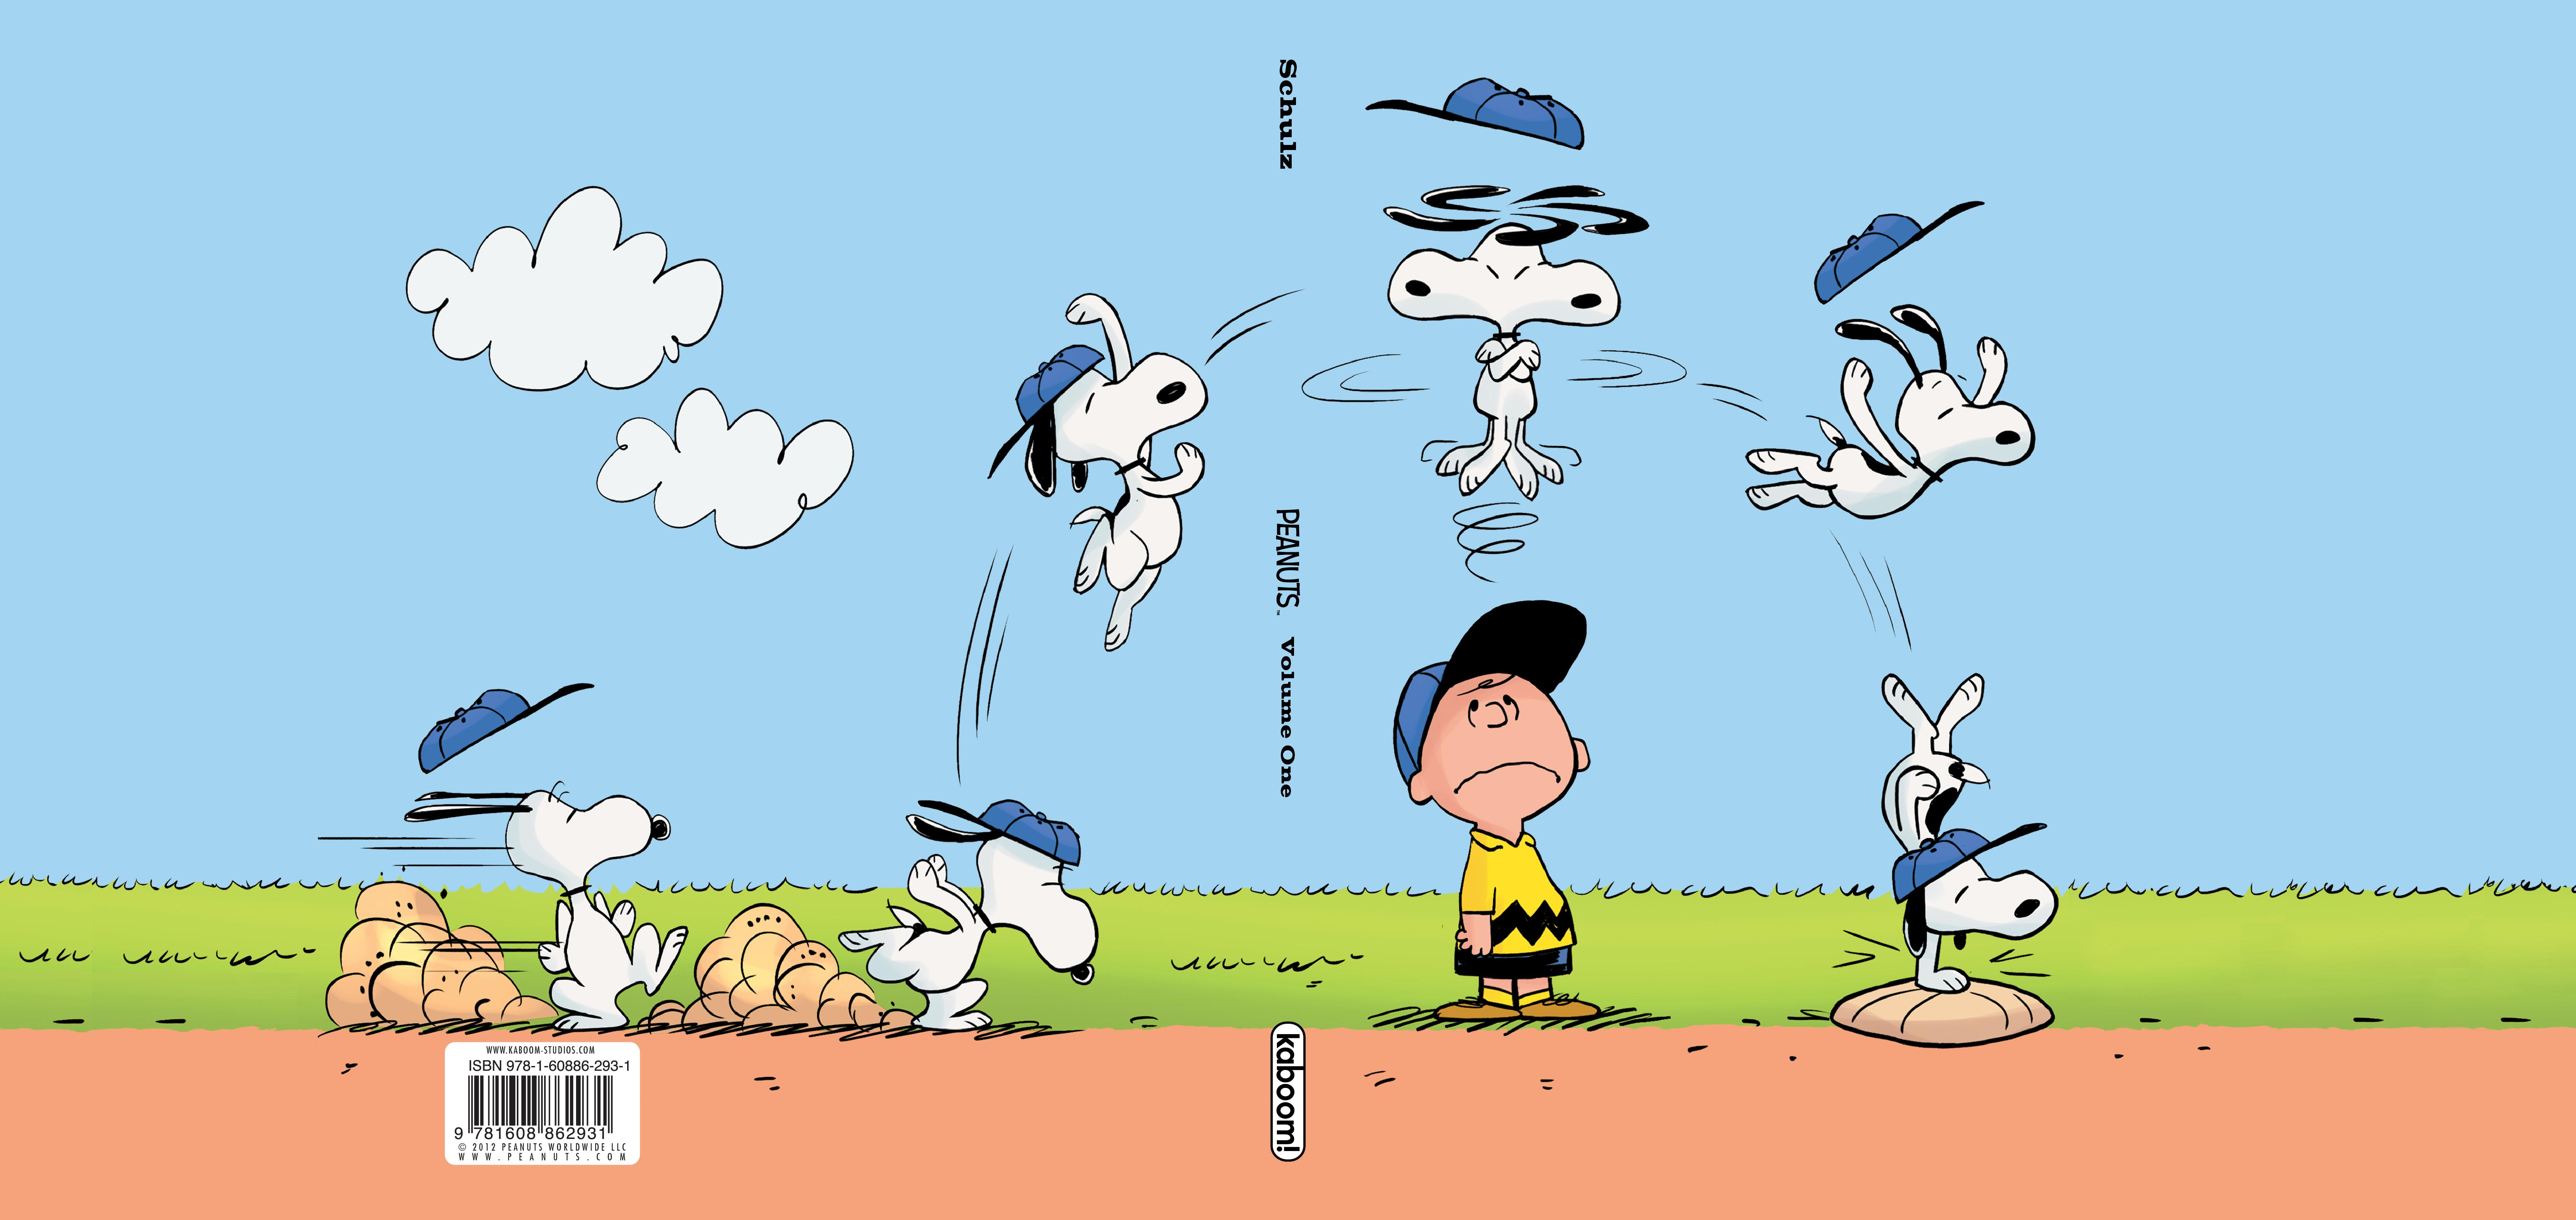 CHARLIE BROWN peanuts comics snoopy t wallpaper background 6609x3131